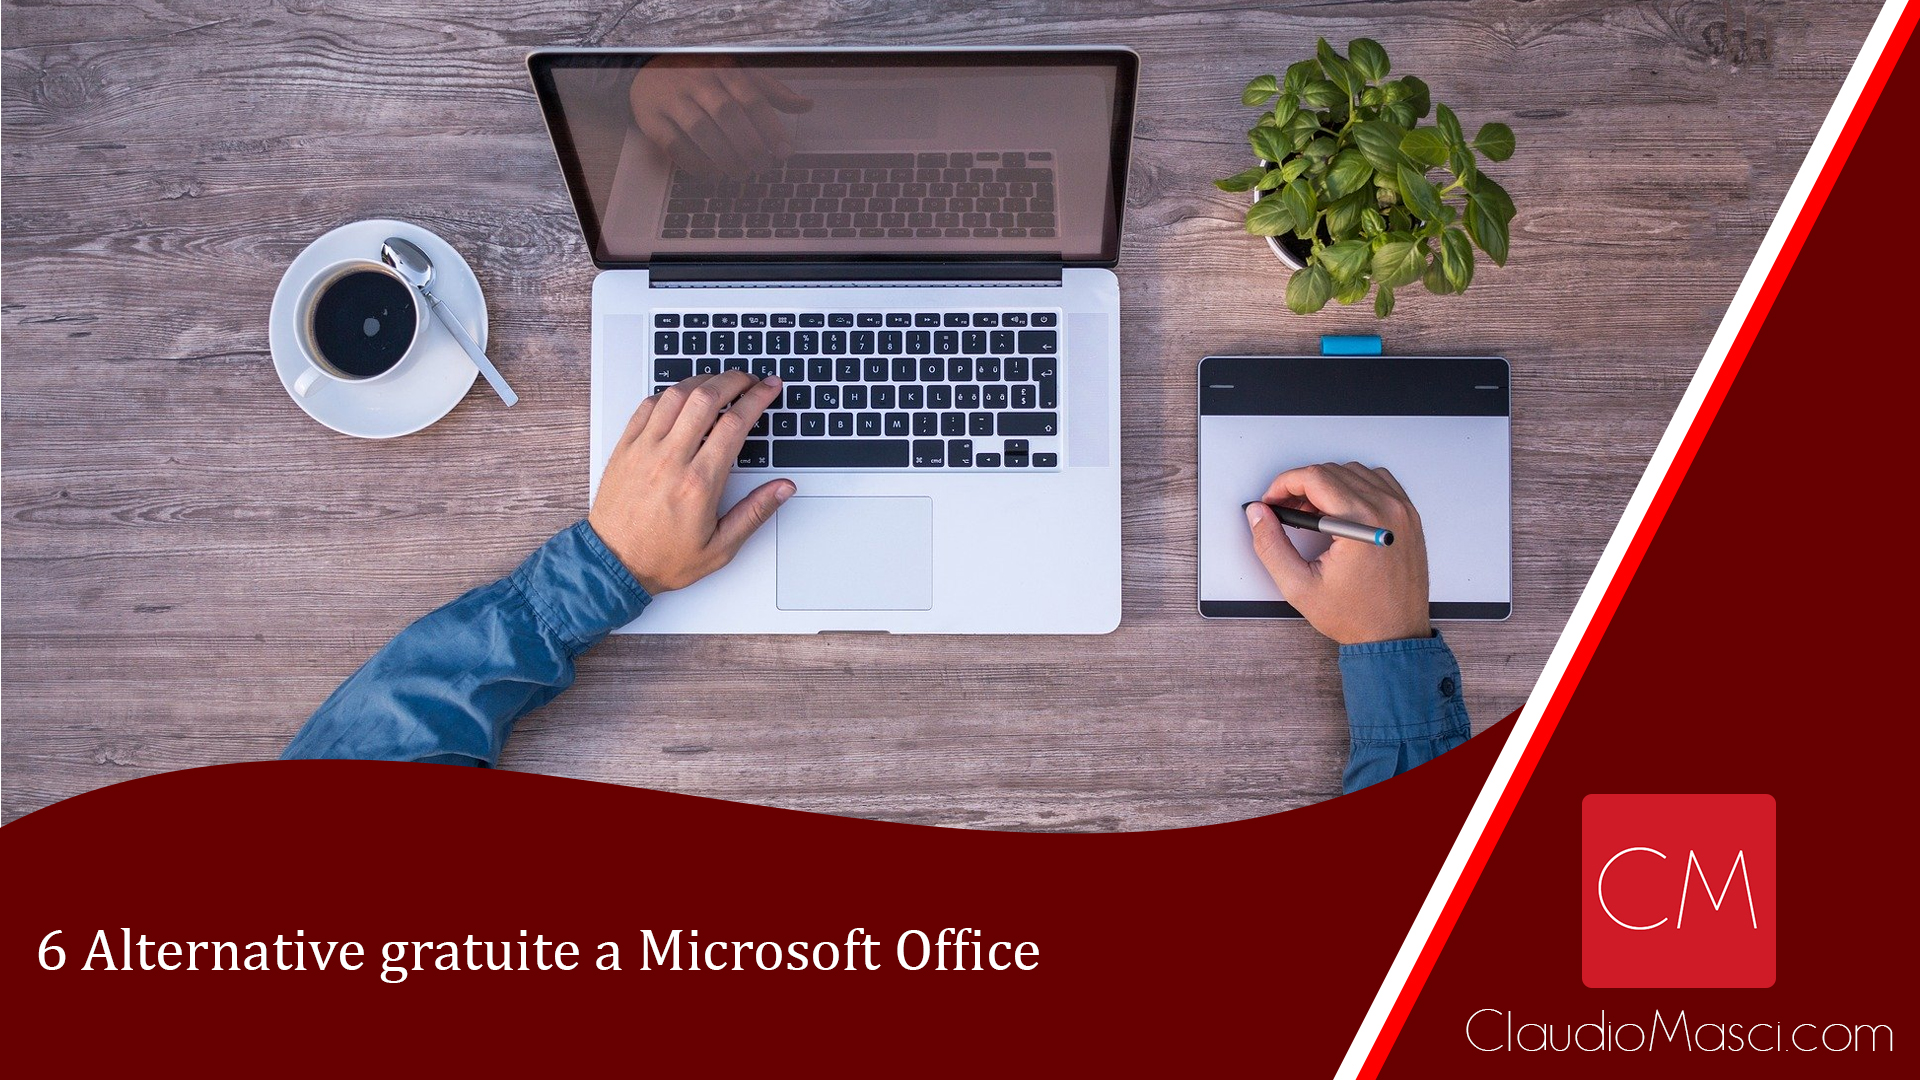 6 Alternative gratuite a Microsoft Office